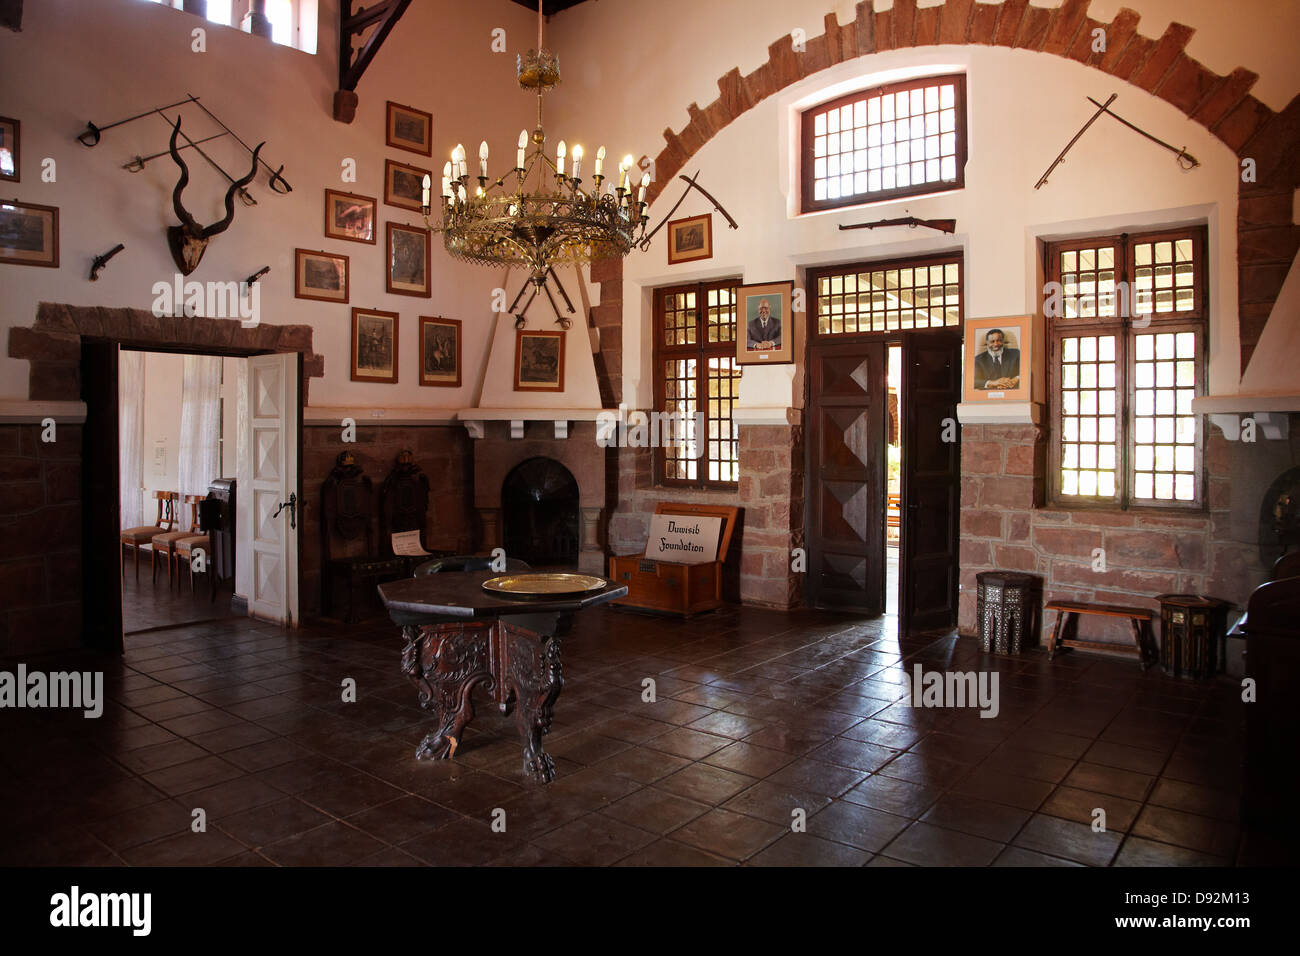 Entrance hall, Duwisib Castle (1908), Southern Namibia, Africa - Stock Image